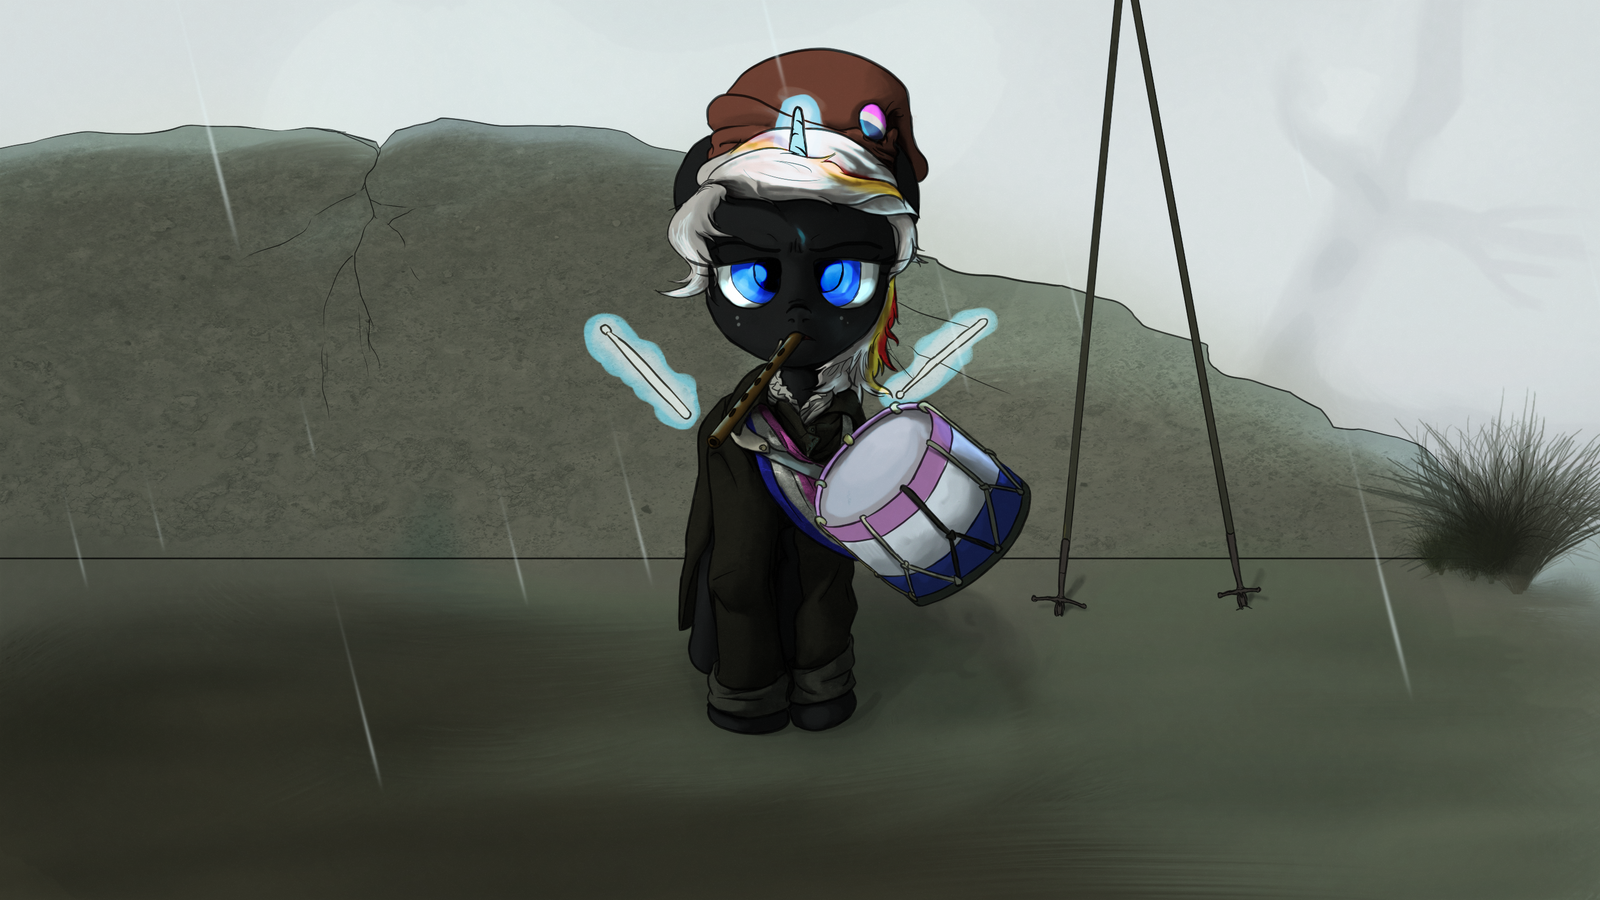 velvet_sans_joie_by_aaronmk-db9a8zf.png